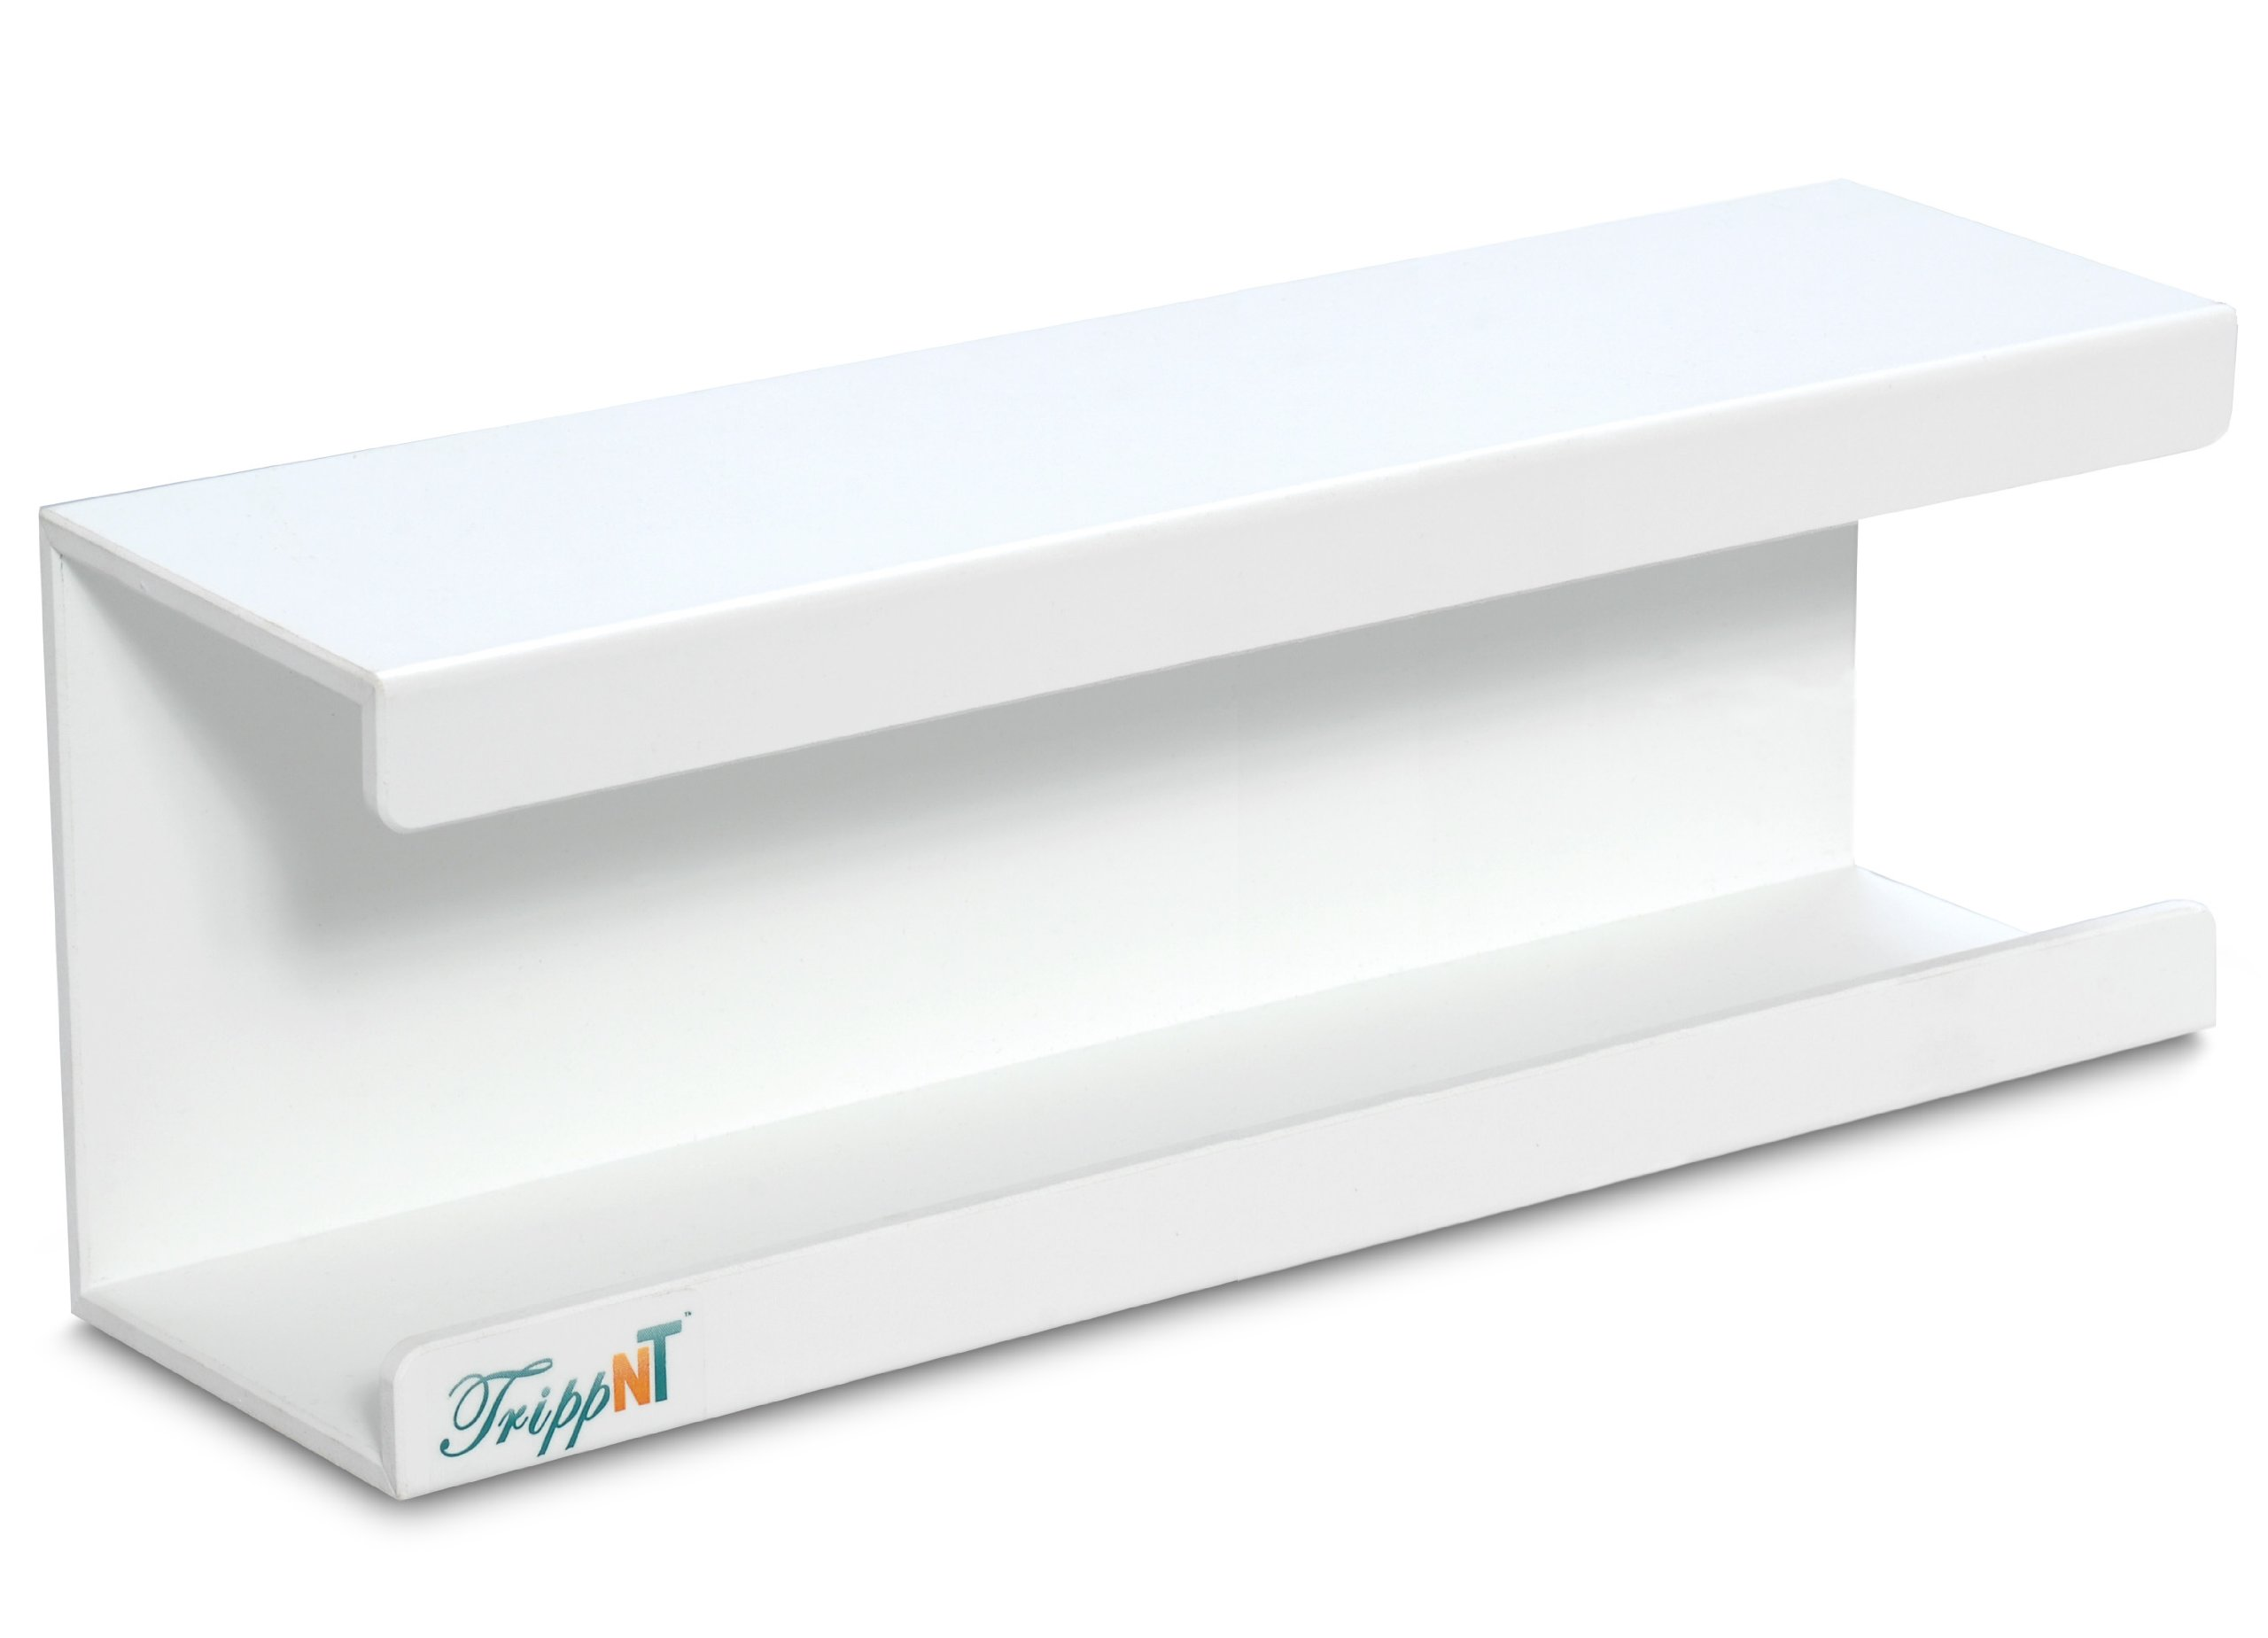 TrippNT 50175 White PVC Large Kimwipe Holder with Double Faced Mounting Tape, 3.5'' Length x 15'' Width x 5'' Height